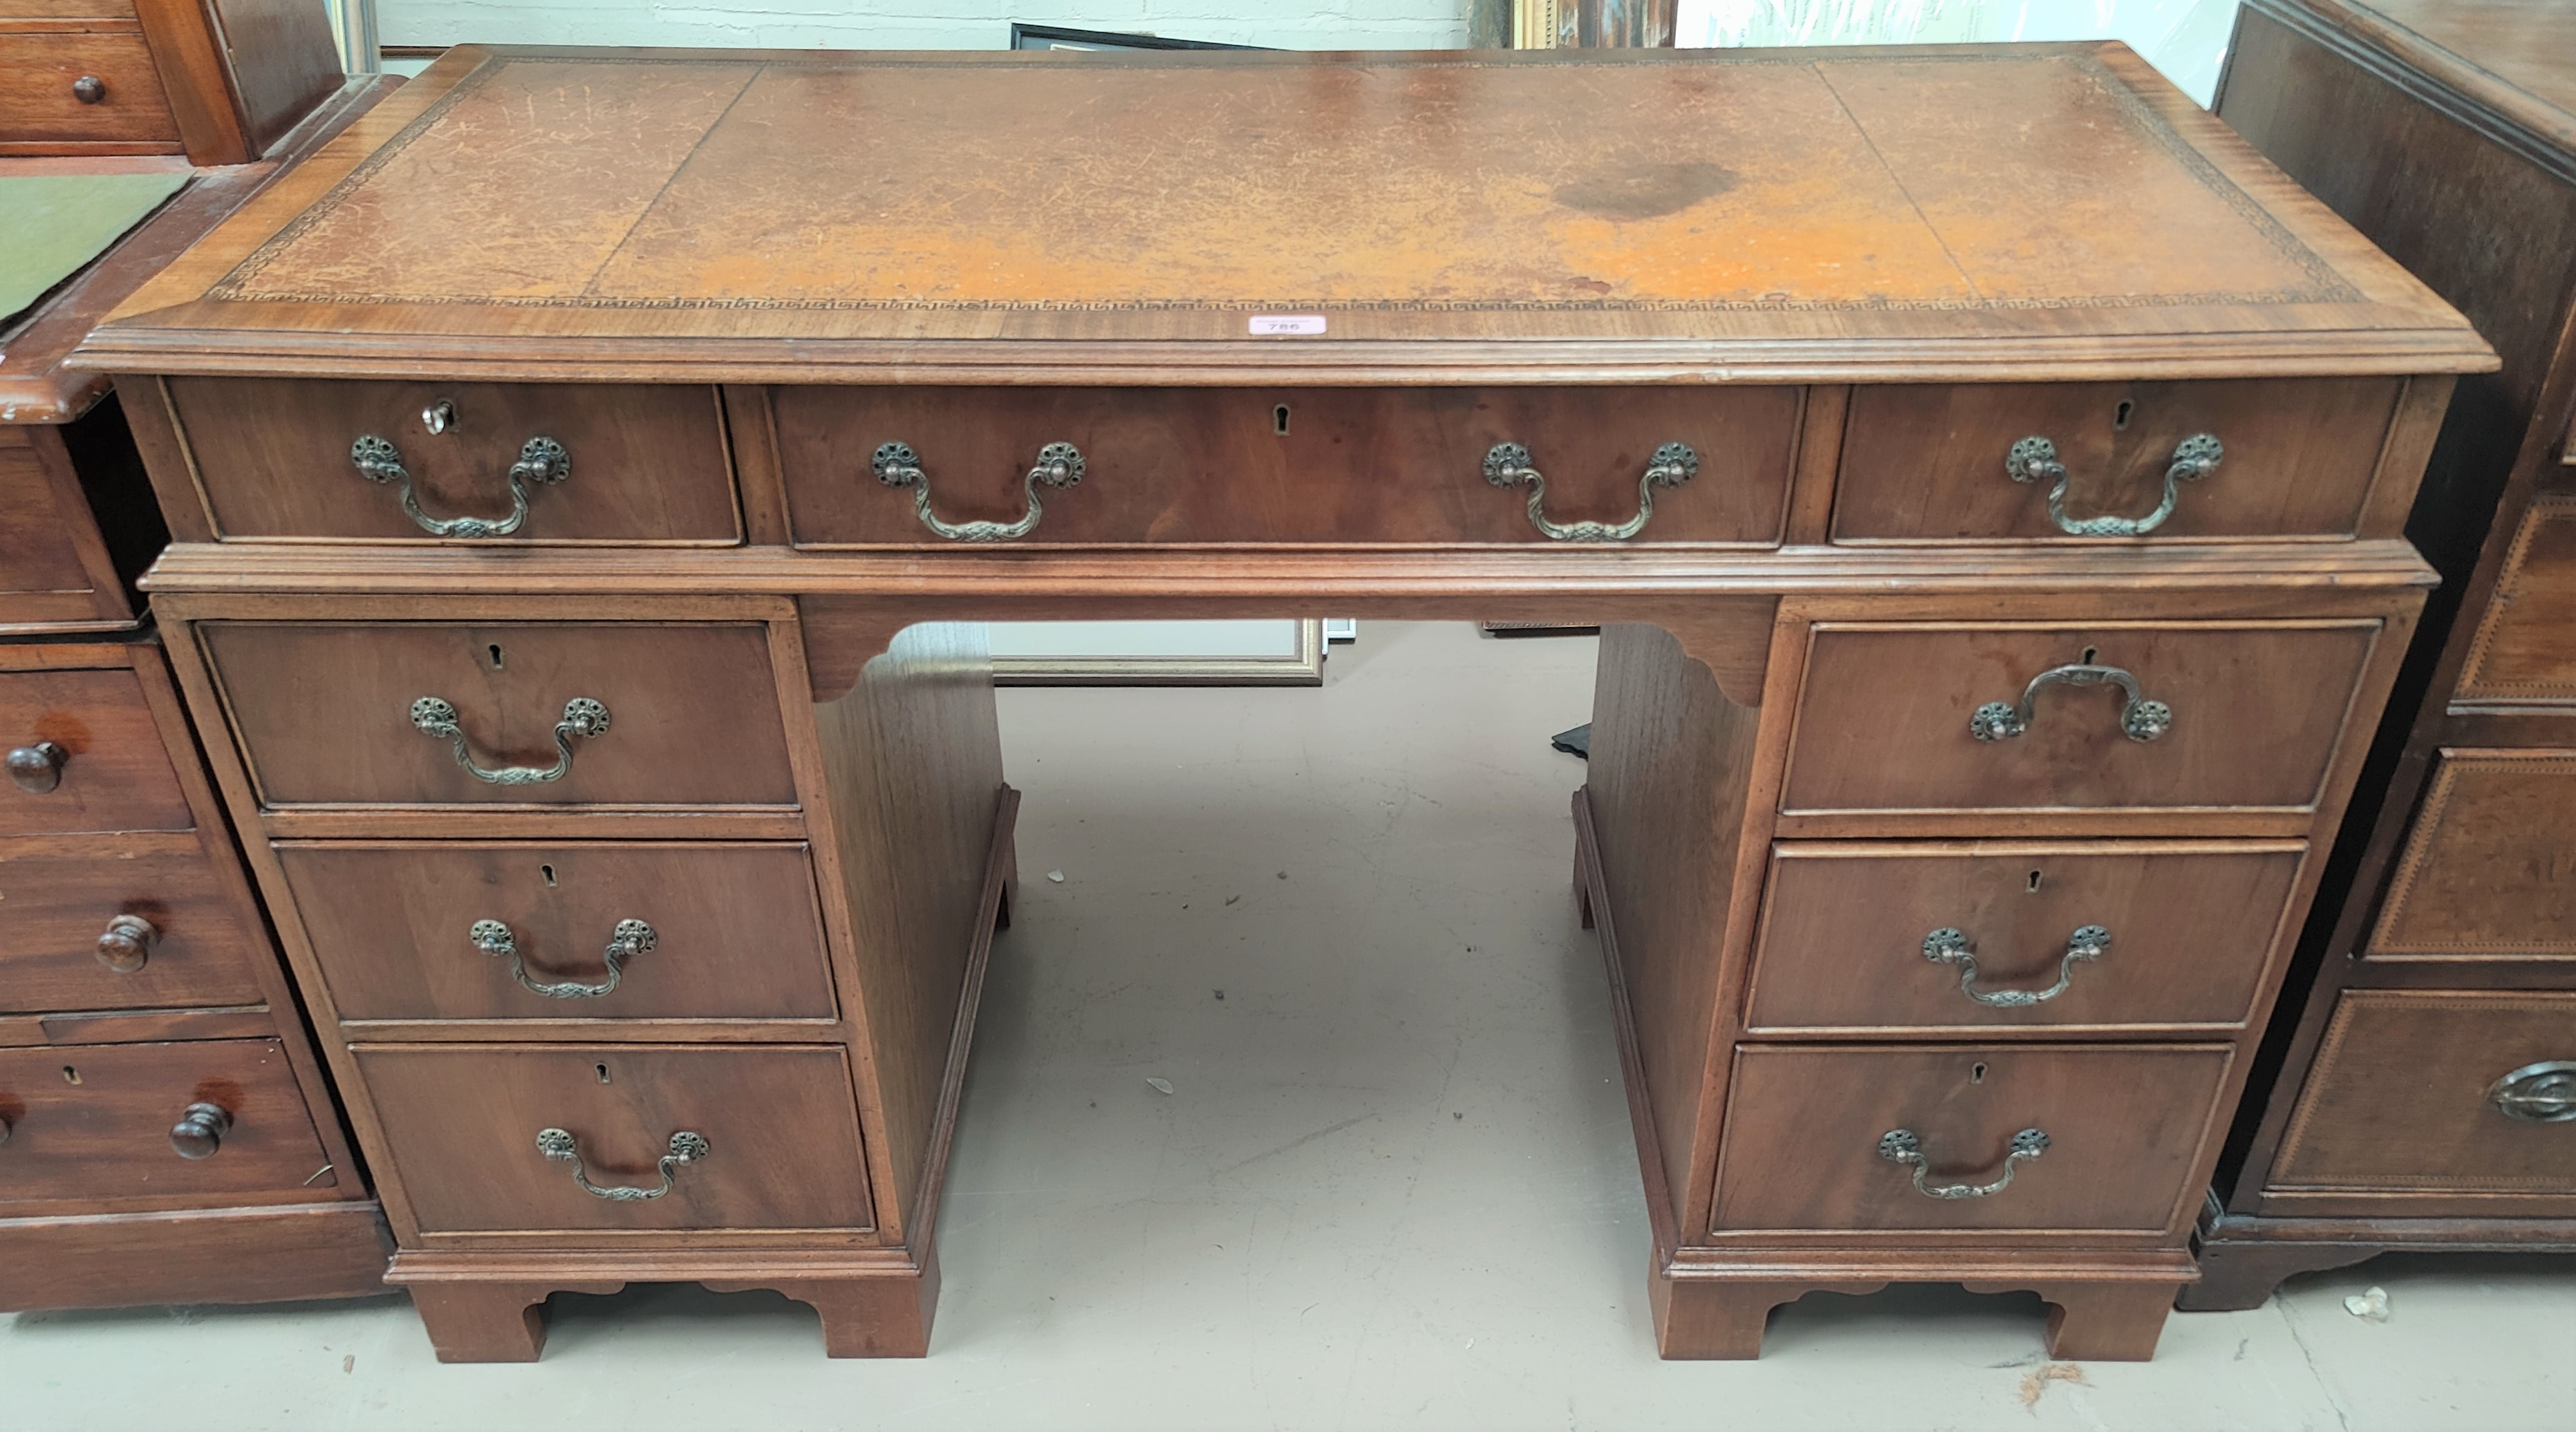 A reproduction mahogany kneehole desk with inset leather top, 3 frieze and 6 pedestal drawers, width